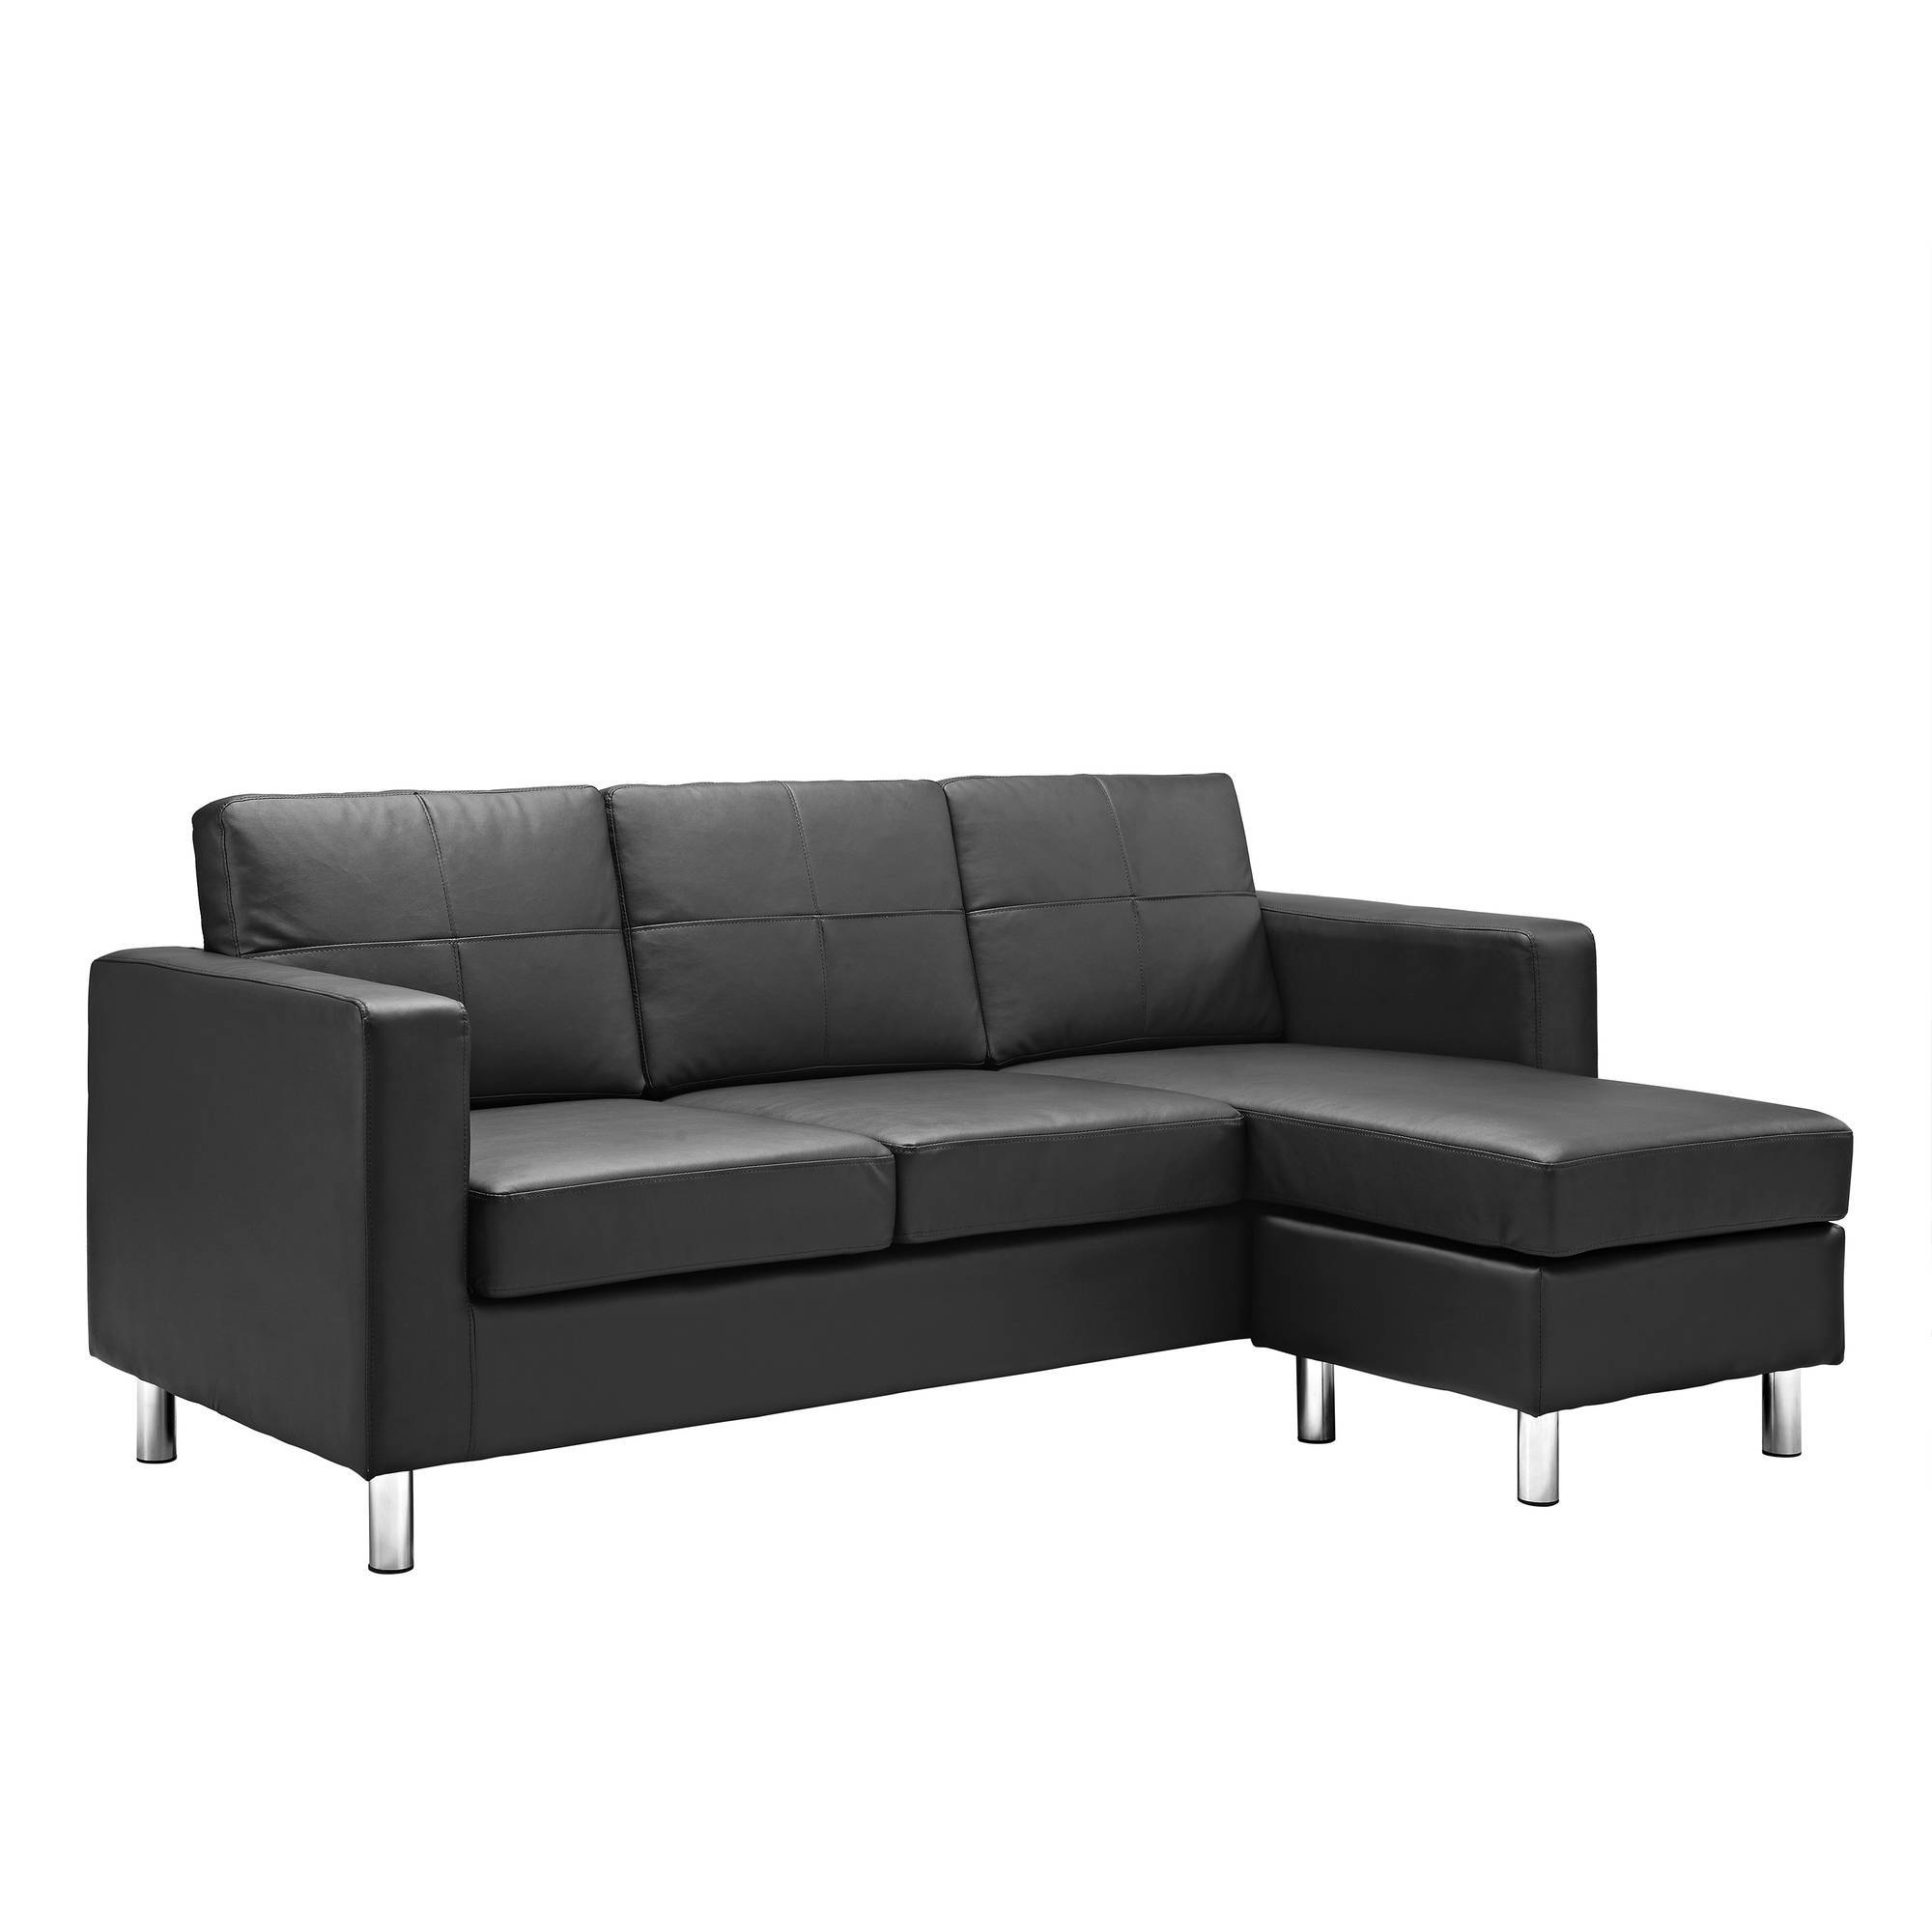 Dorel Living Small Spaces Configurable Sectional Sofa, Multiple inside Wallmart Sofa (Image 8 of 25)